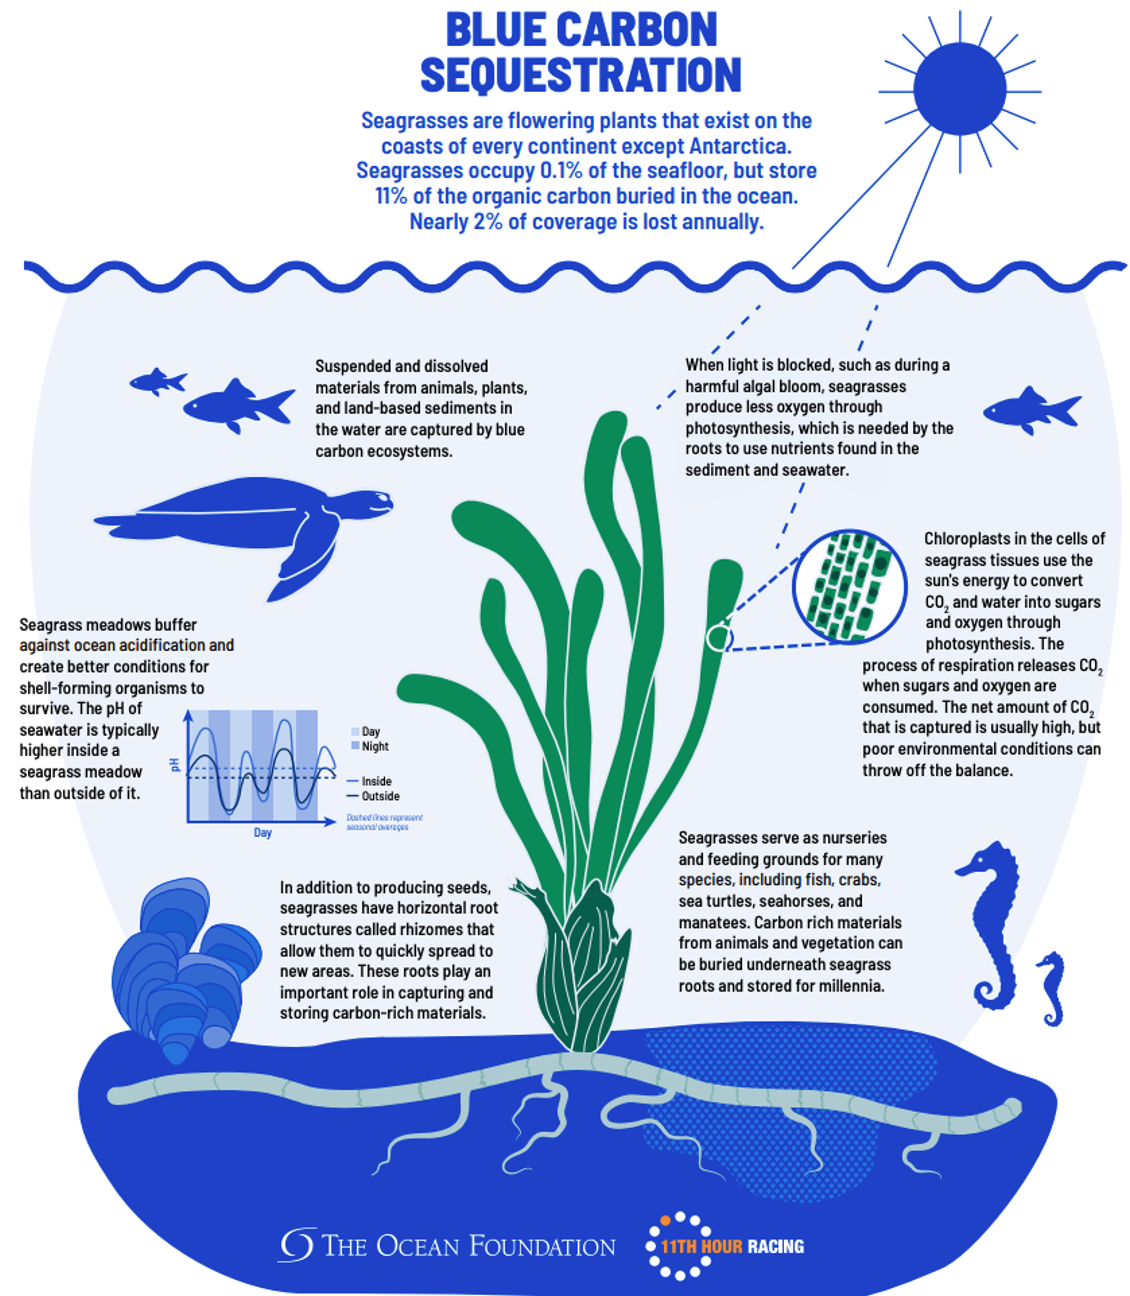 Illustrated diagram of the blue carbon sequestration process. Please see link in caption for detailed description.